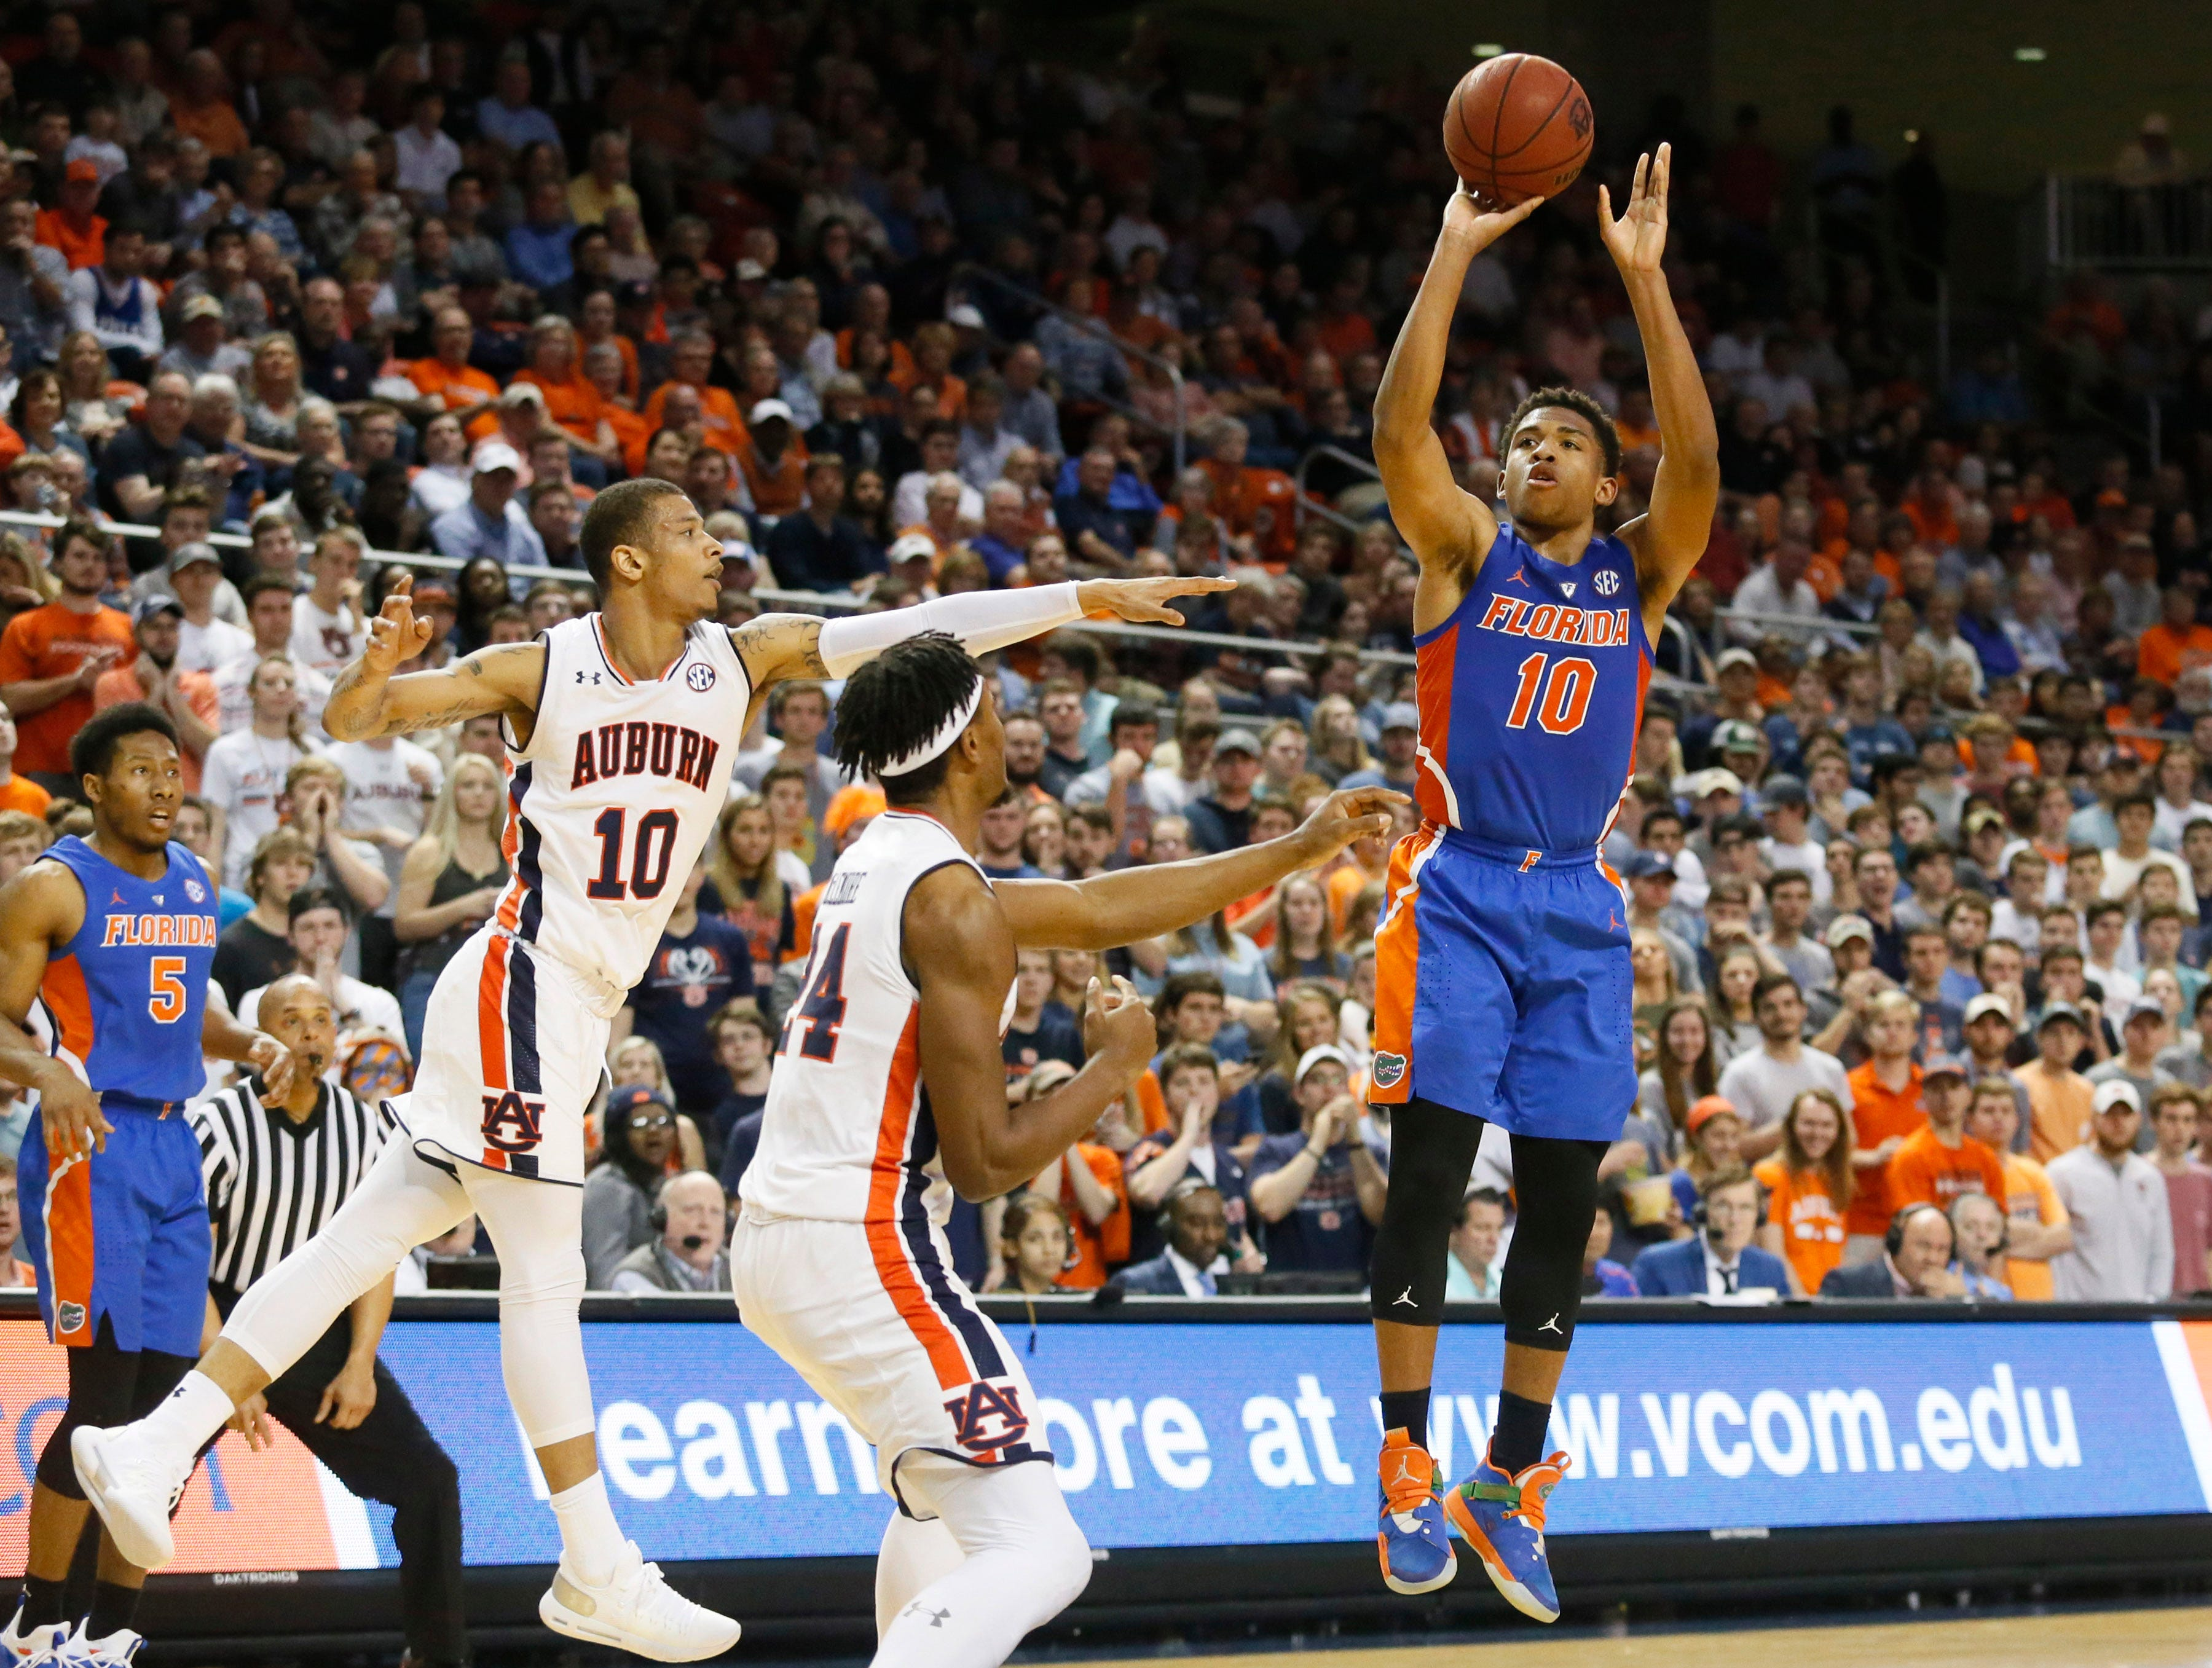 Feb 5, 2019; Auburn, AL, USA; Florida Gators guard Noah Locke (10) takes a shot against the Auburn Tigers during the first half at Auburn Arena. Mandatory Credit: John Reed-USA TODAY Sports